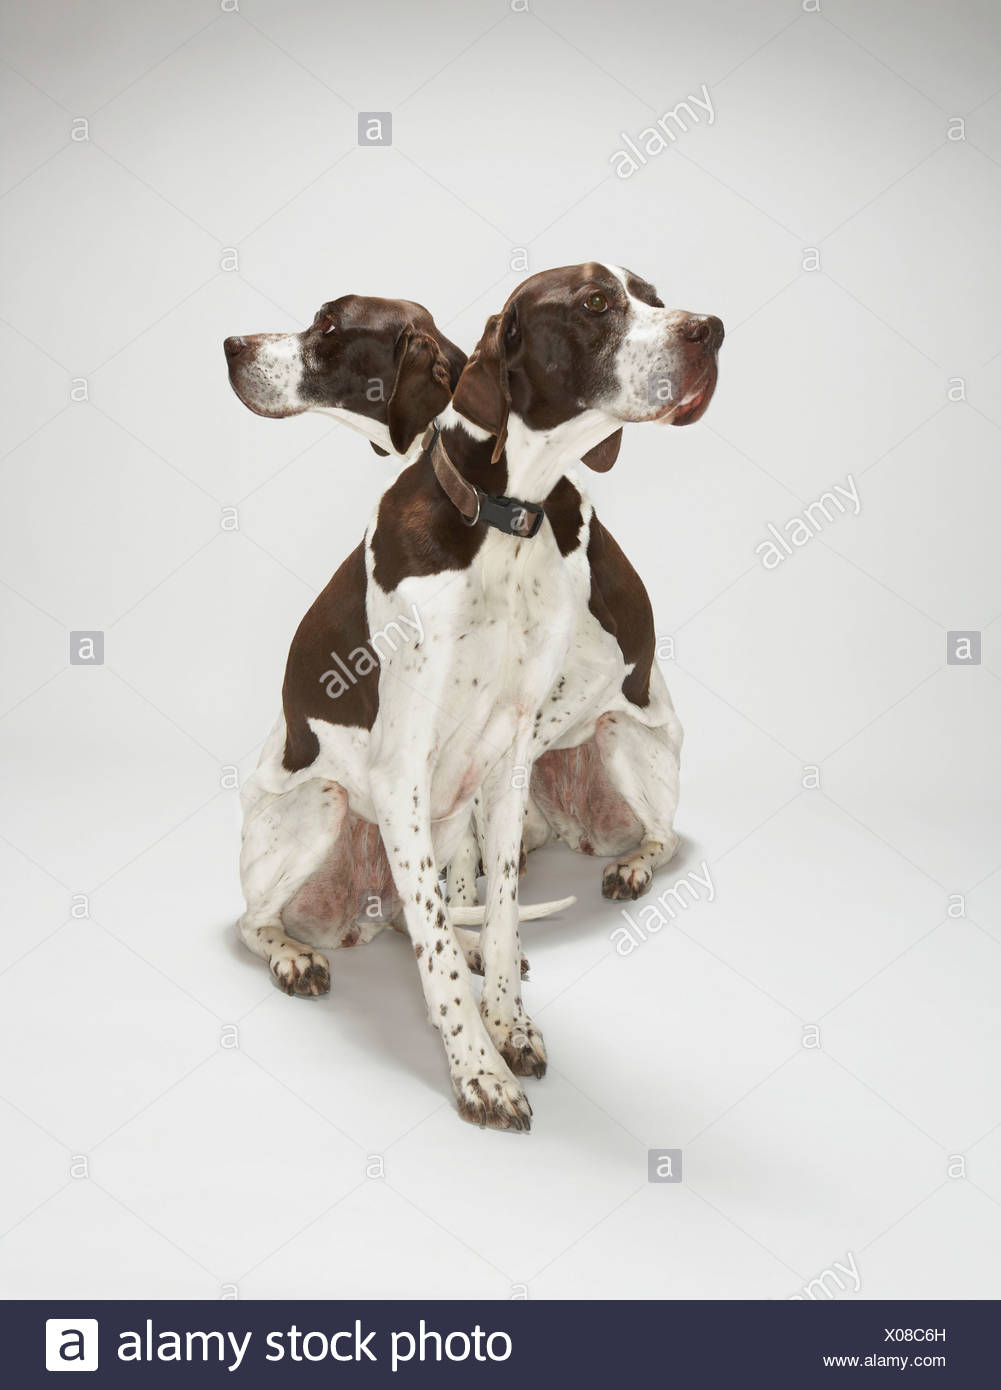 Pointers looking in opposite directions - Stock Image